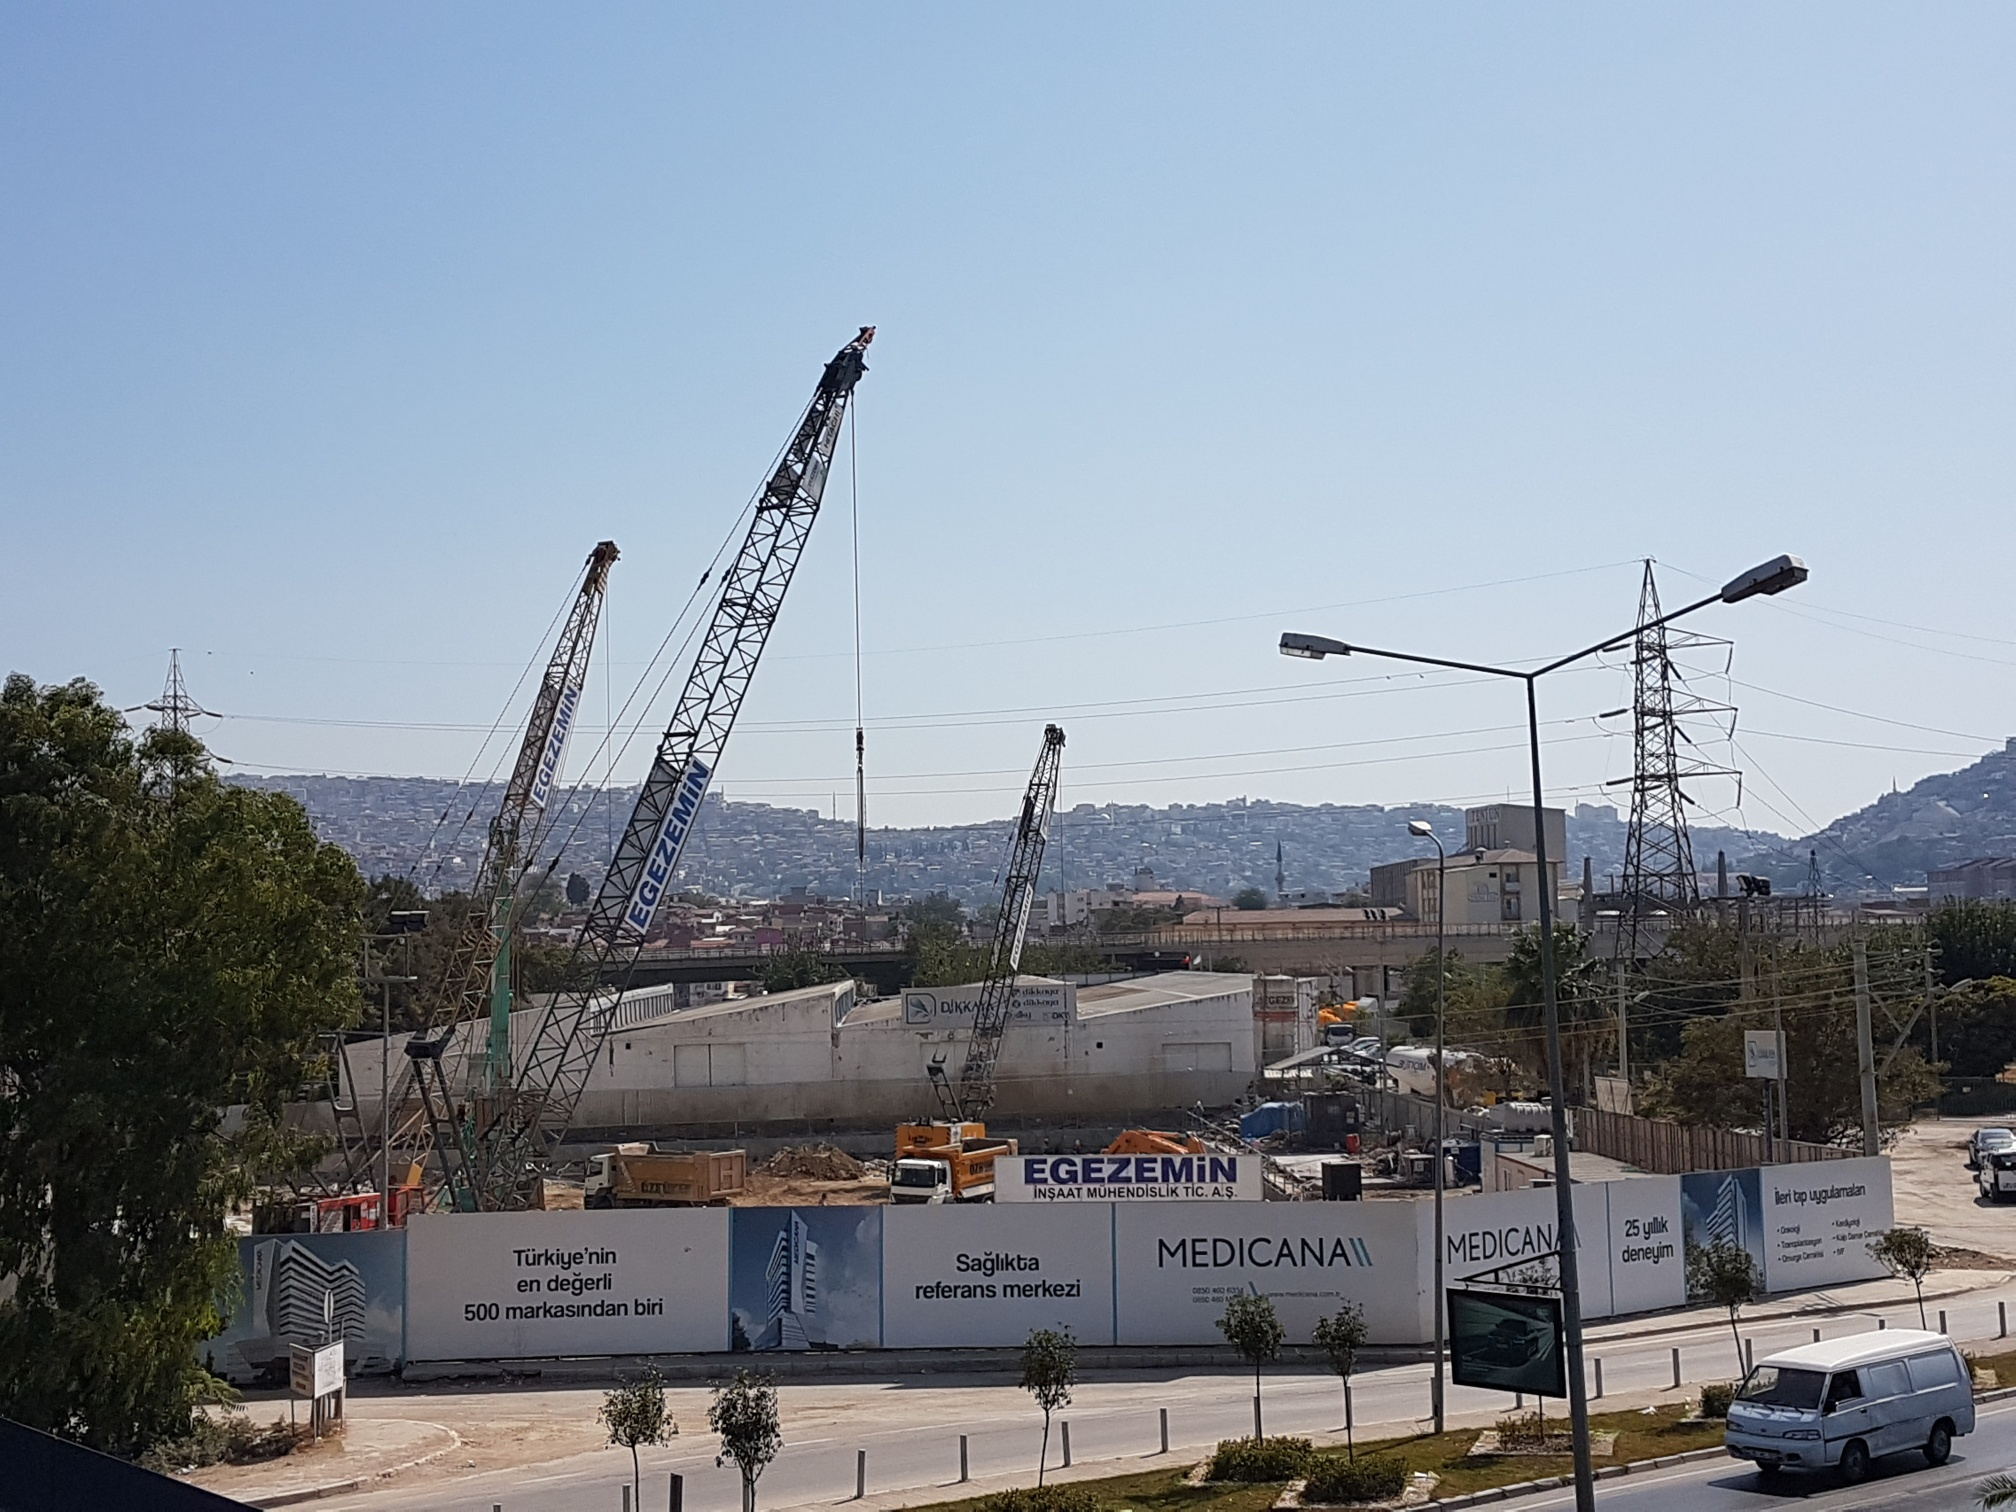 200 beds hospital project in Izmir